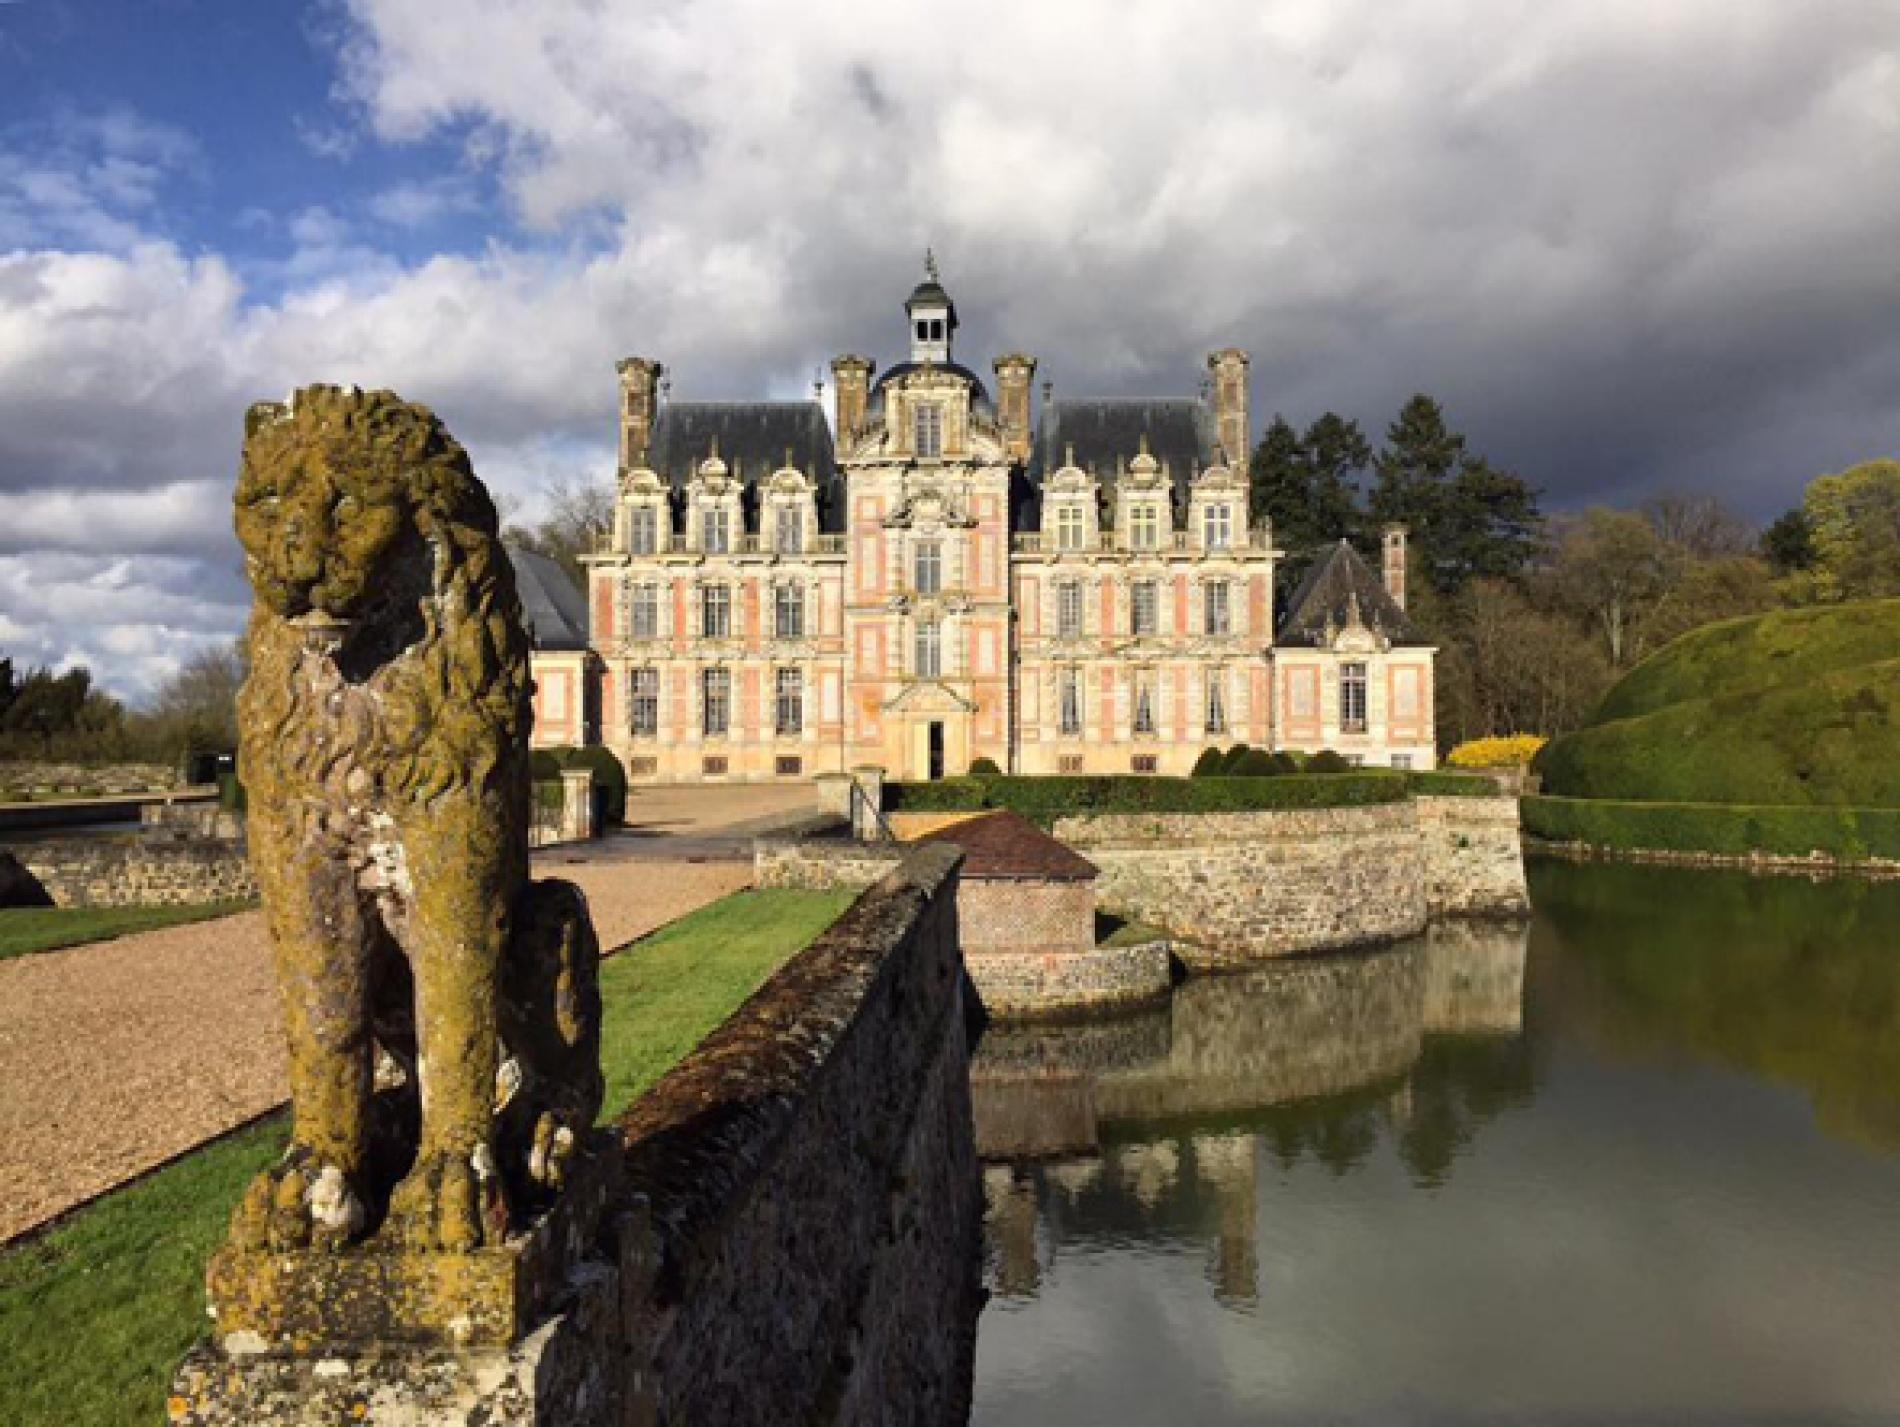 Beaumesnil castle